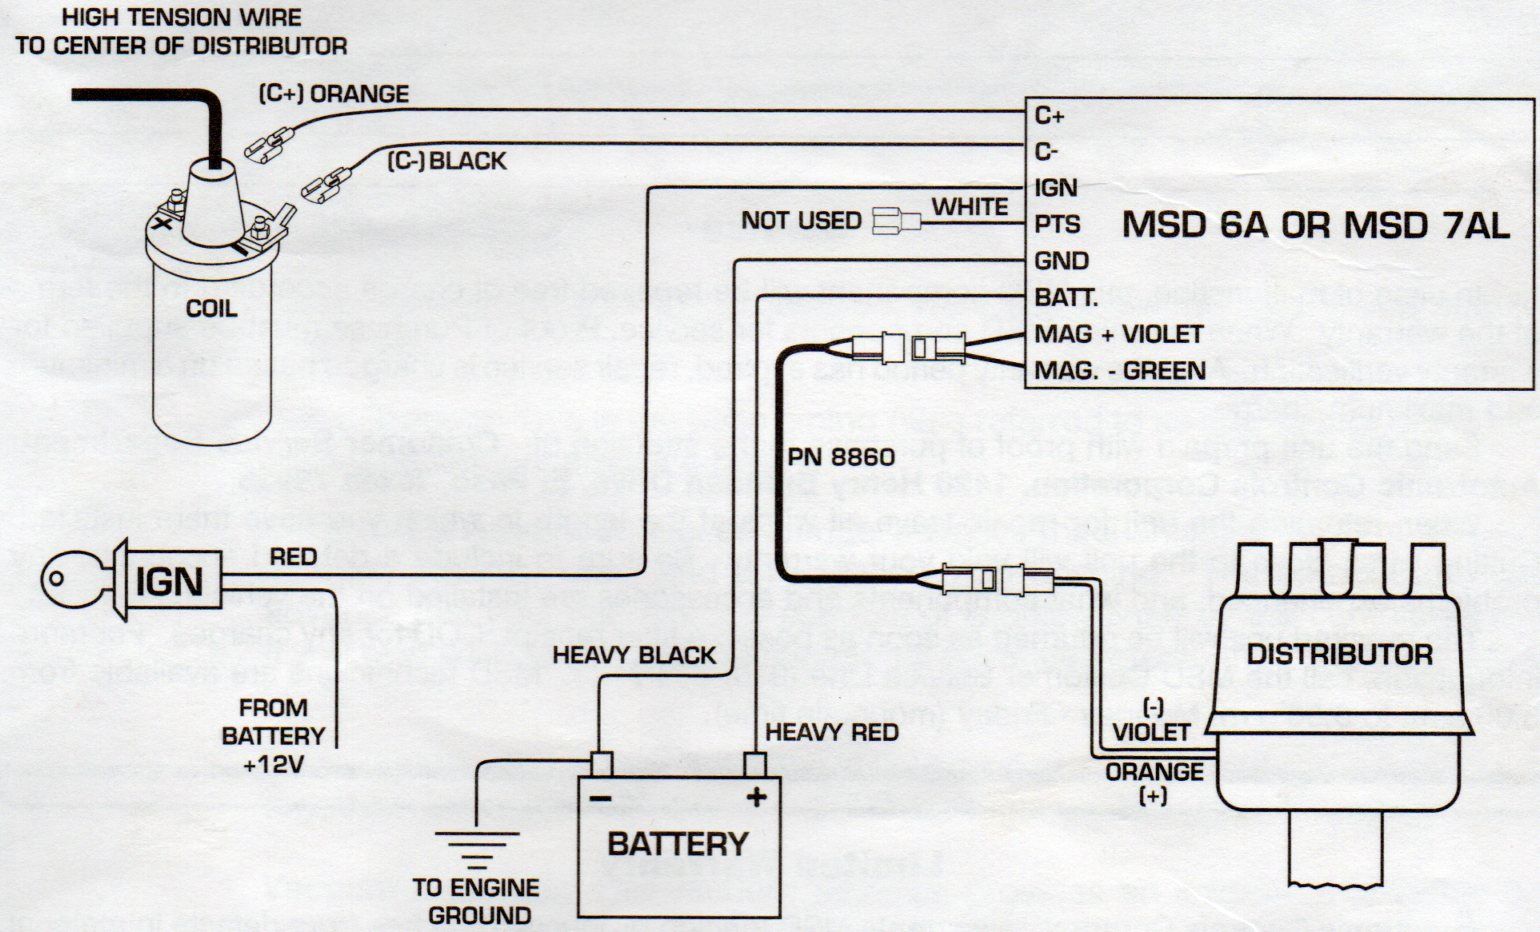 Chevy Msd Distributor Wiring Diagram